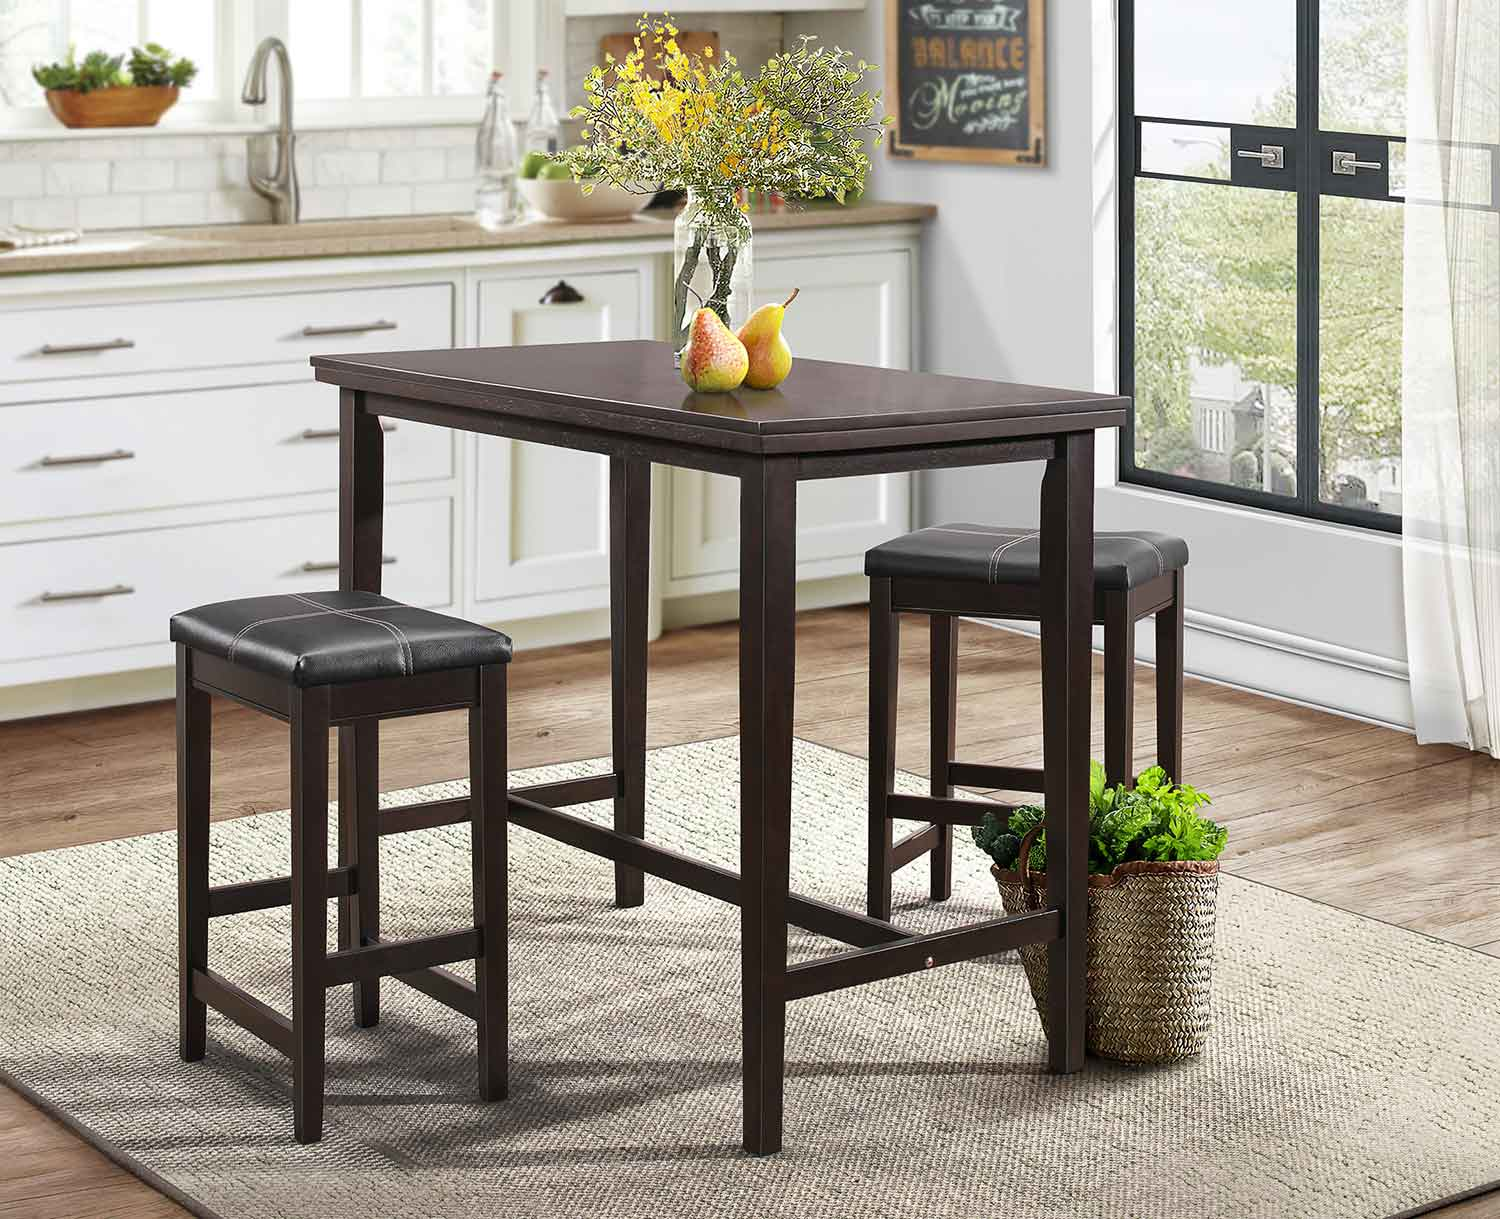 Homelegance Tirel 3-Piece Pack Counter Height Set - Dark Brown - Dark Brown Bi-Cast Vinyl